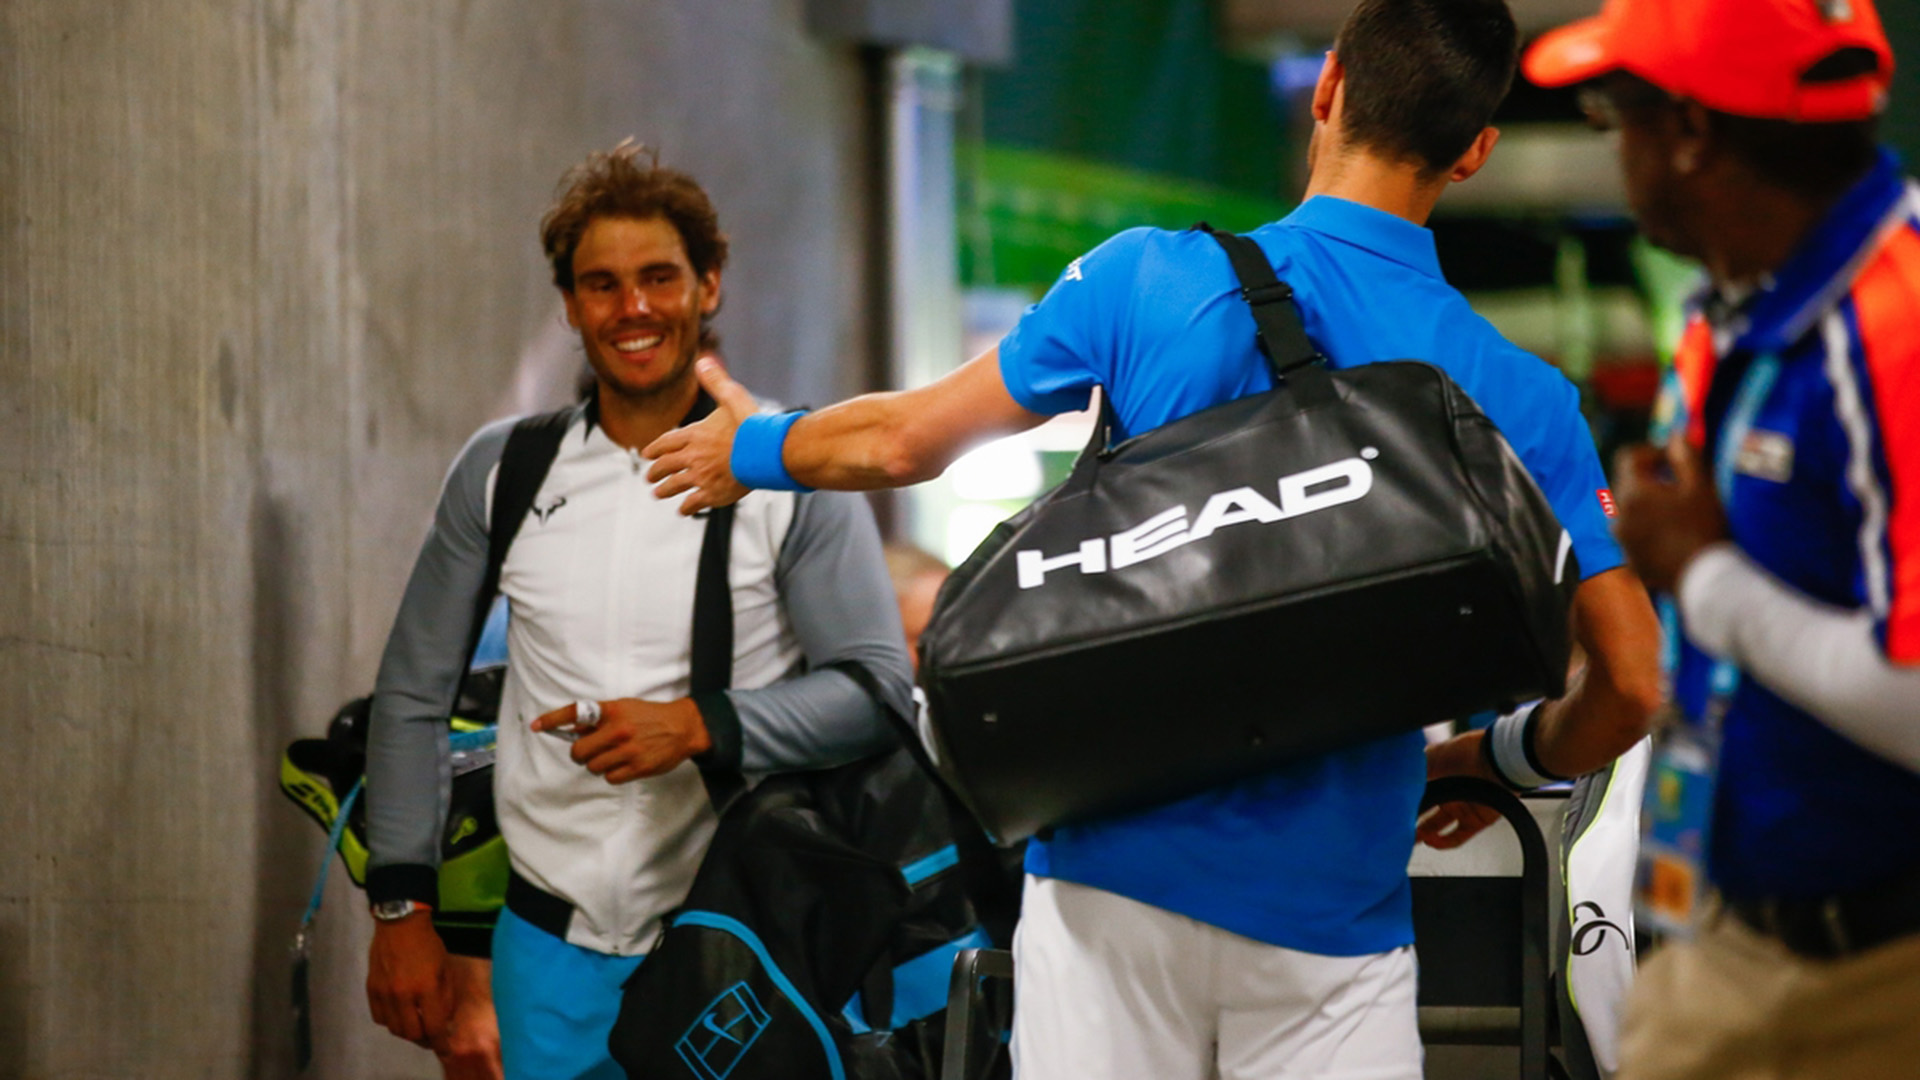 rafael nadal heads up atp rankings while novak djokvic drops down 2017 images